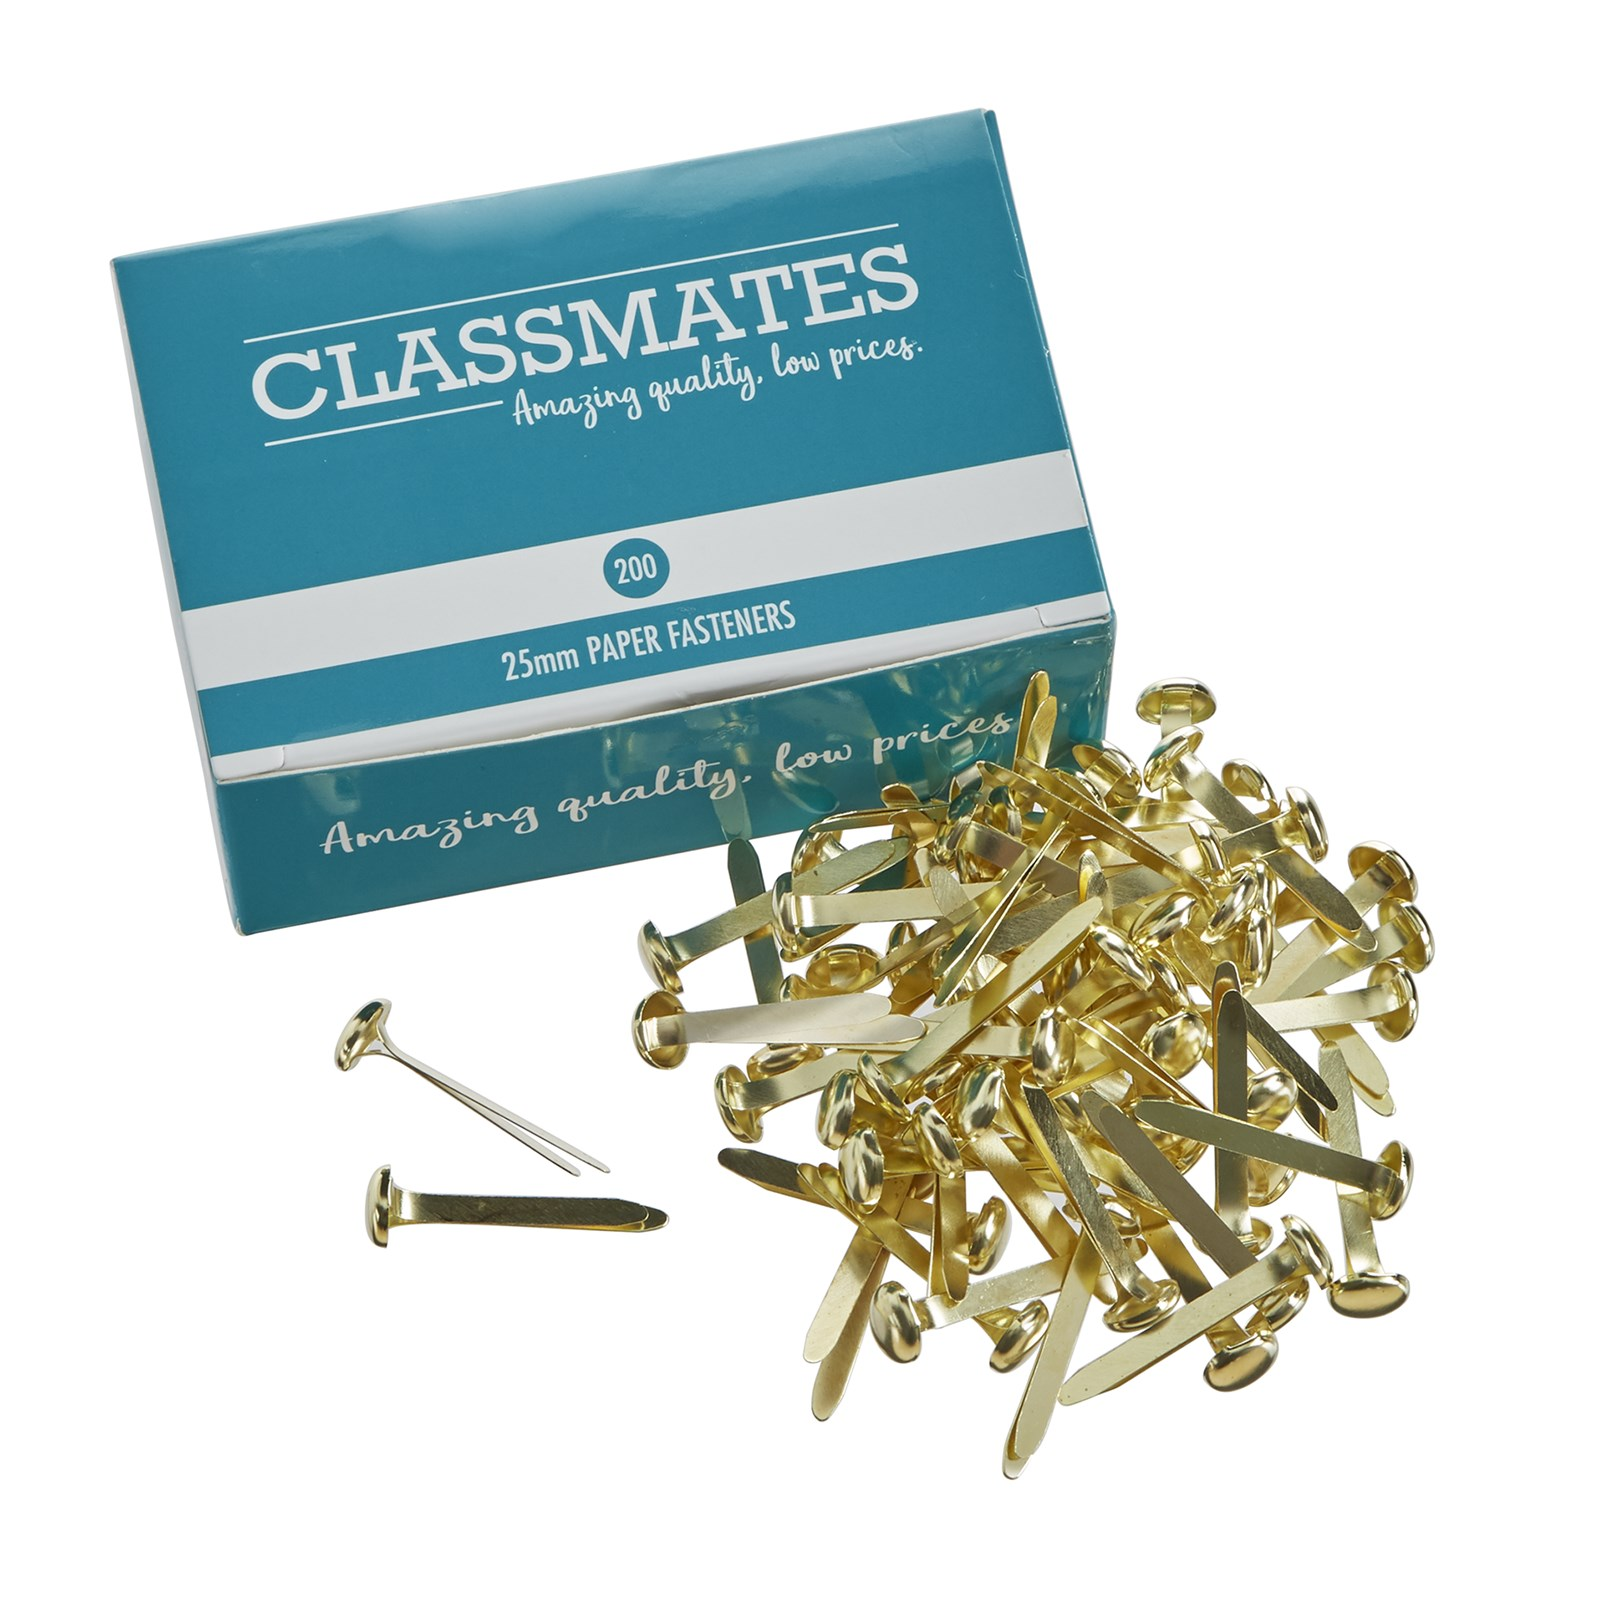 Classmates Paper Fasteners 25mm - Pack of 200